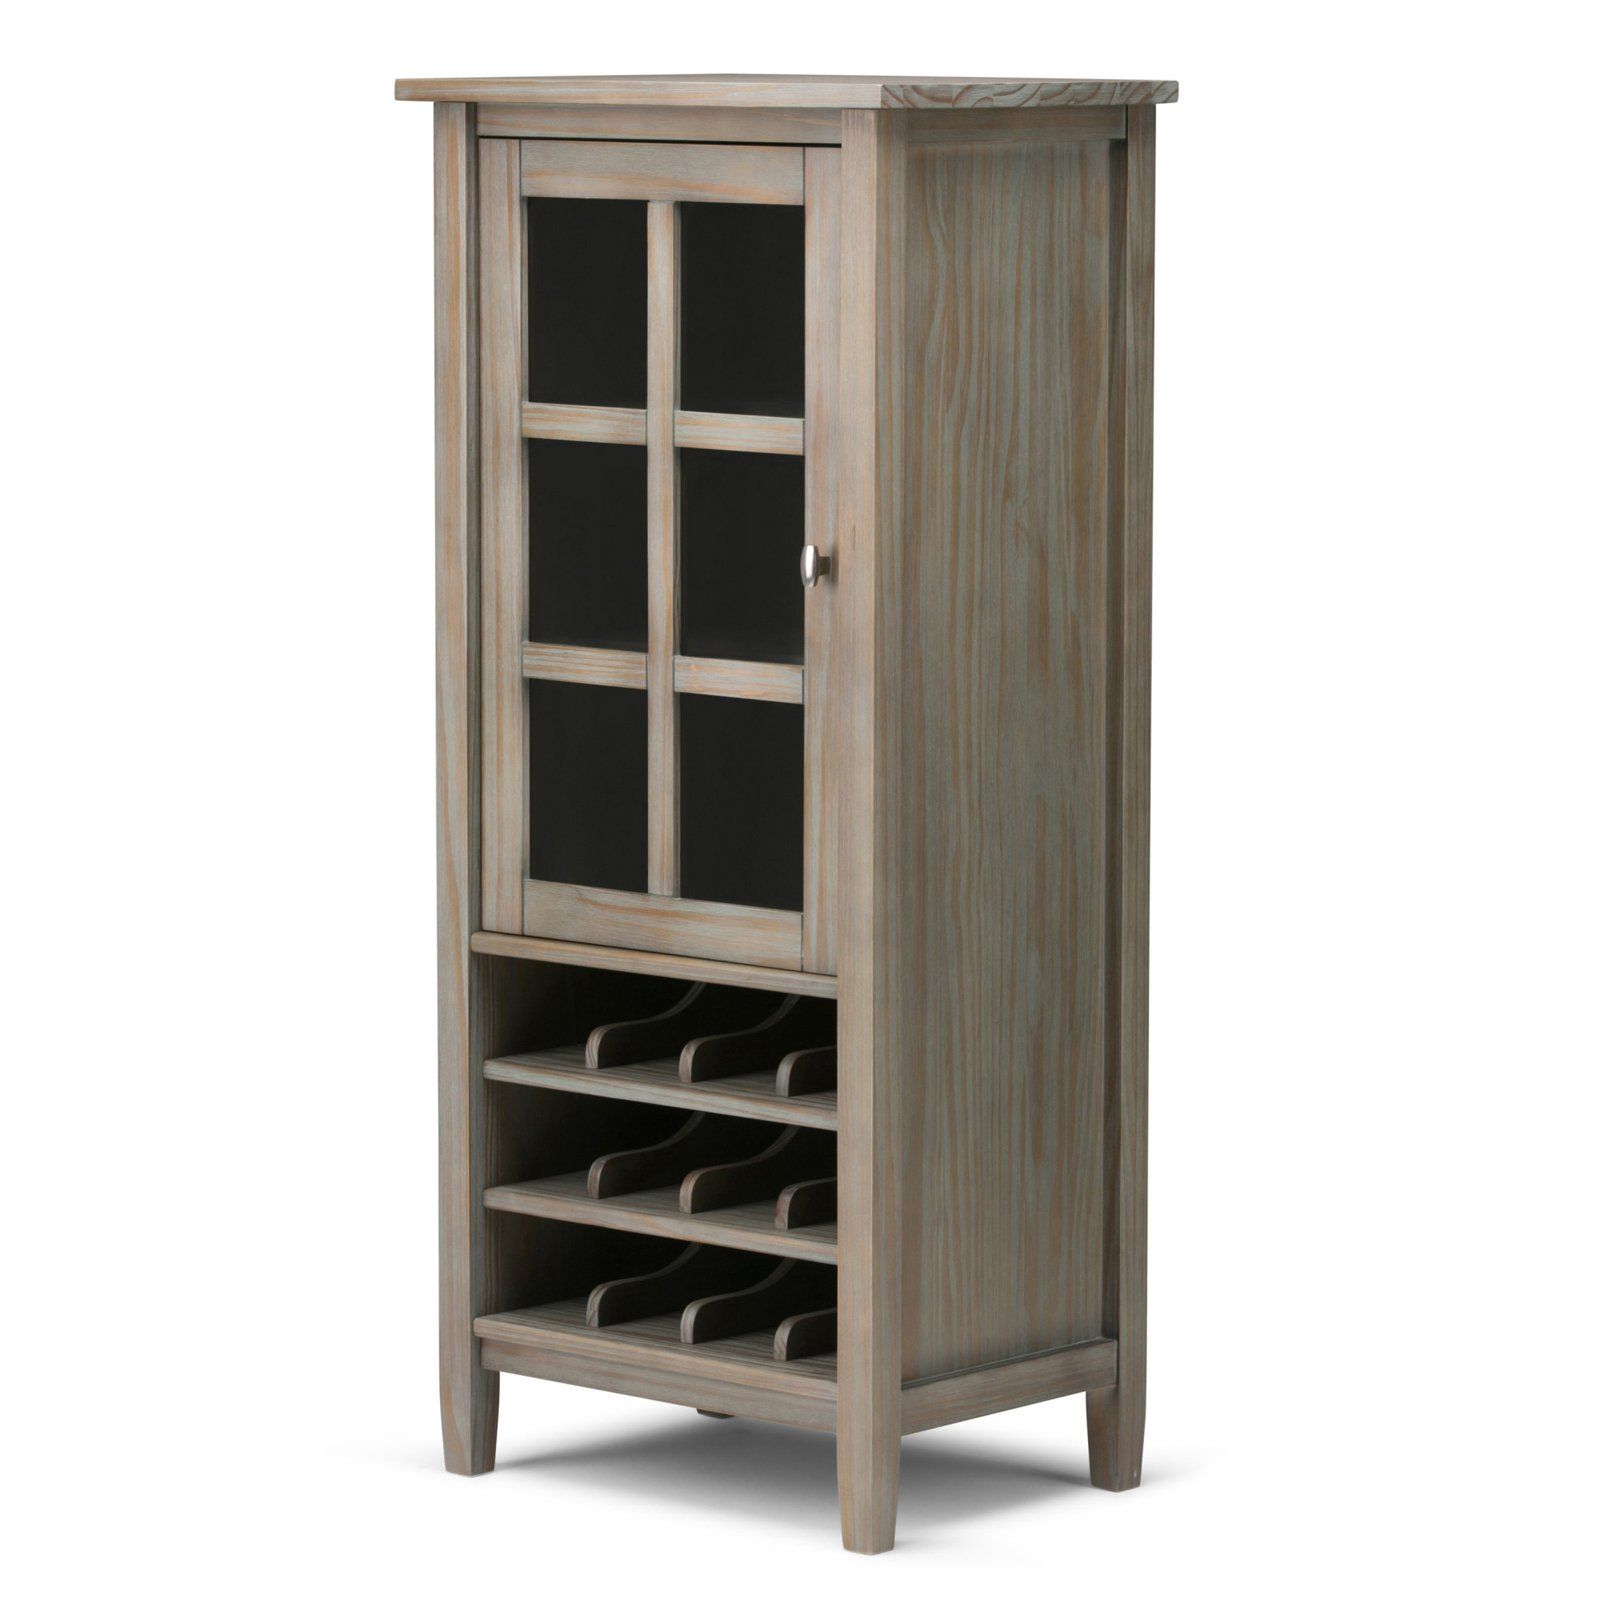 Brooklyn Max Lexington 12 Bottle Wine Tower In 2020 Wine Tower Wine Storage Wine Rack